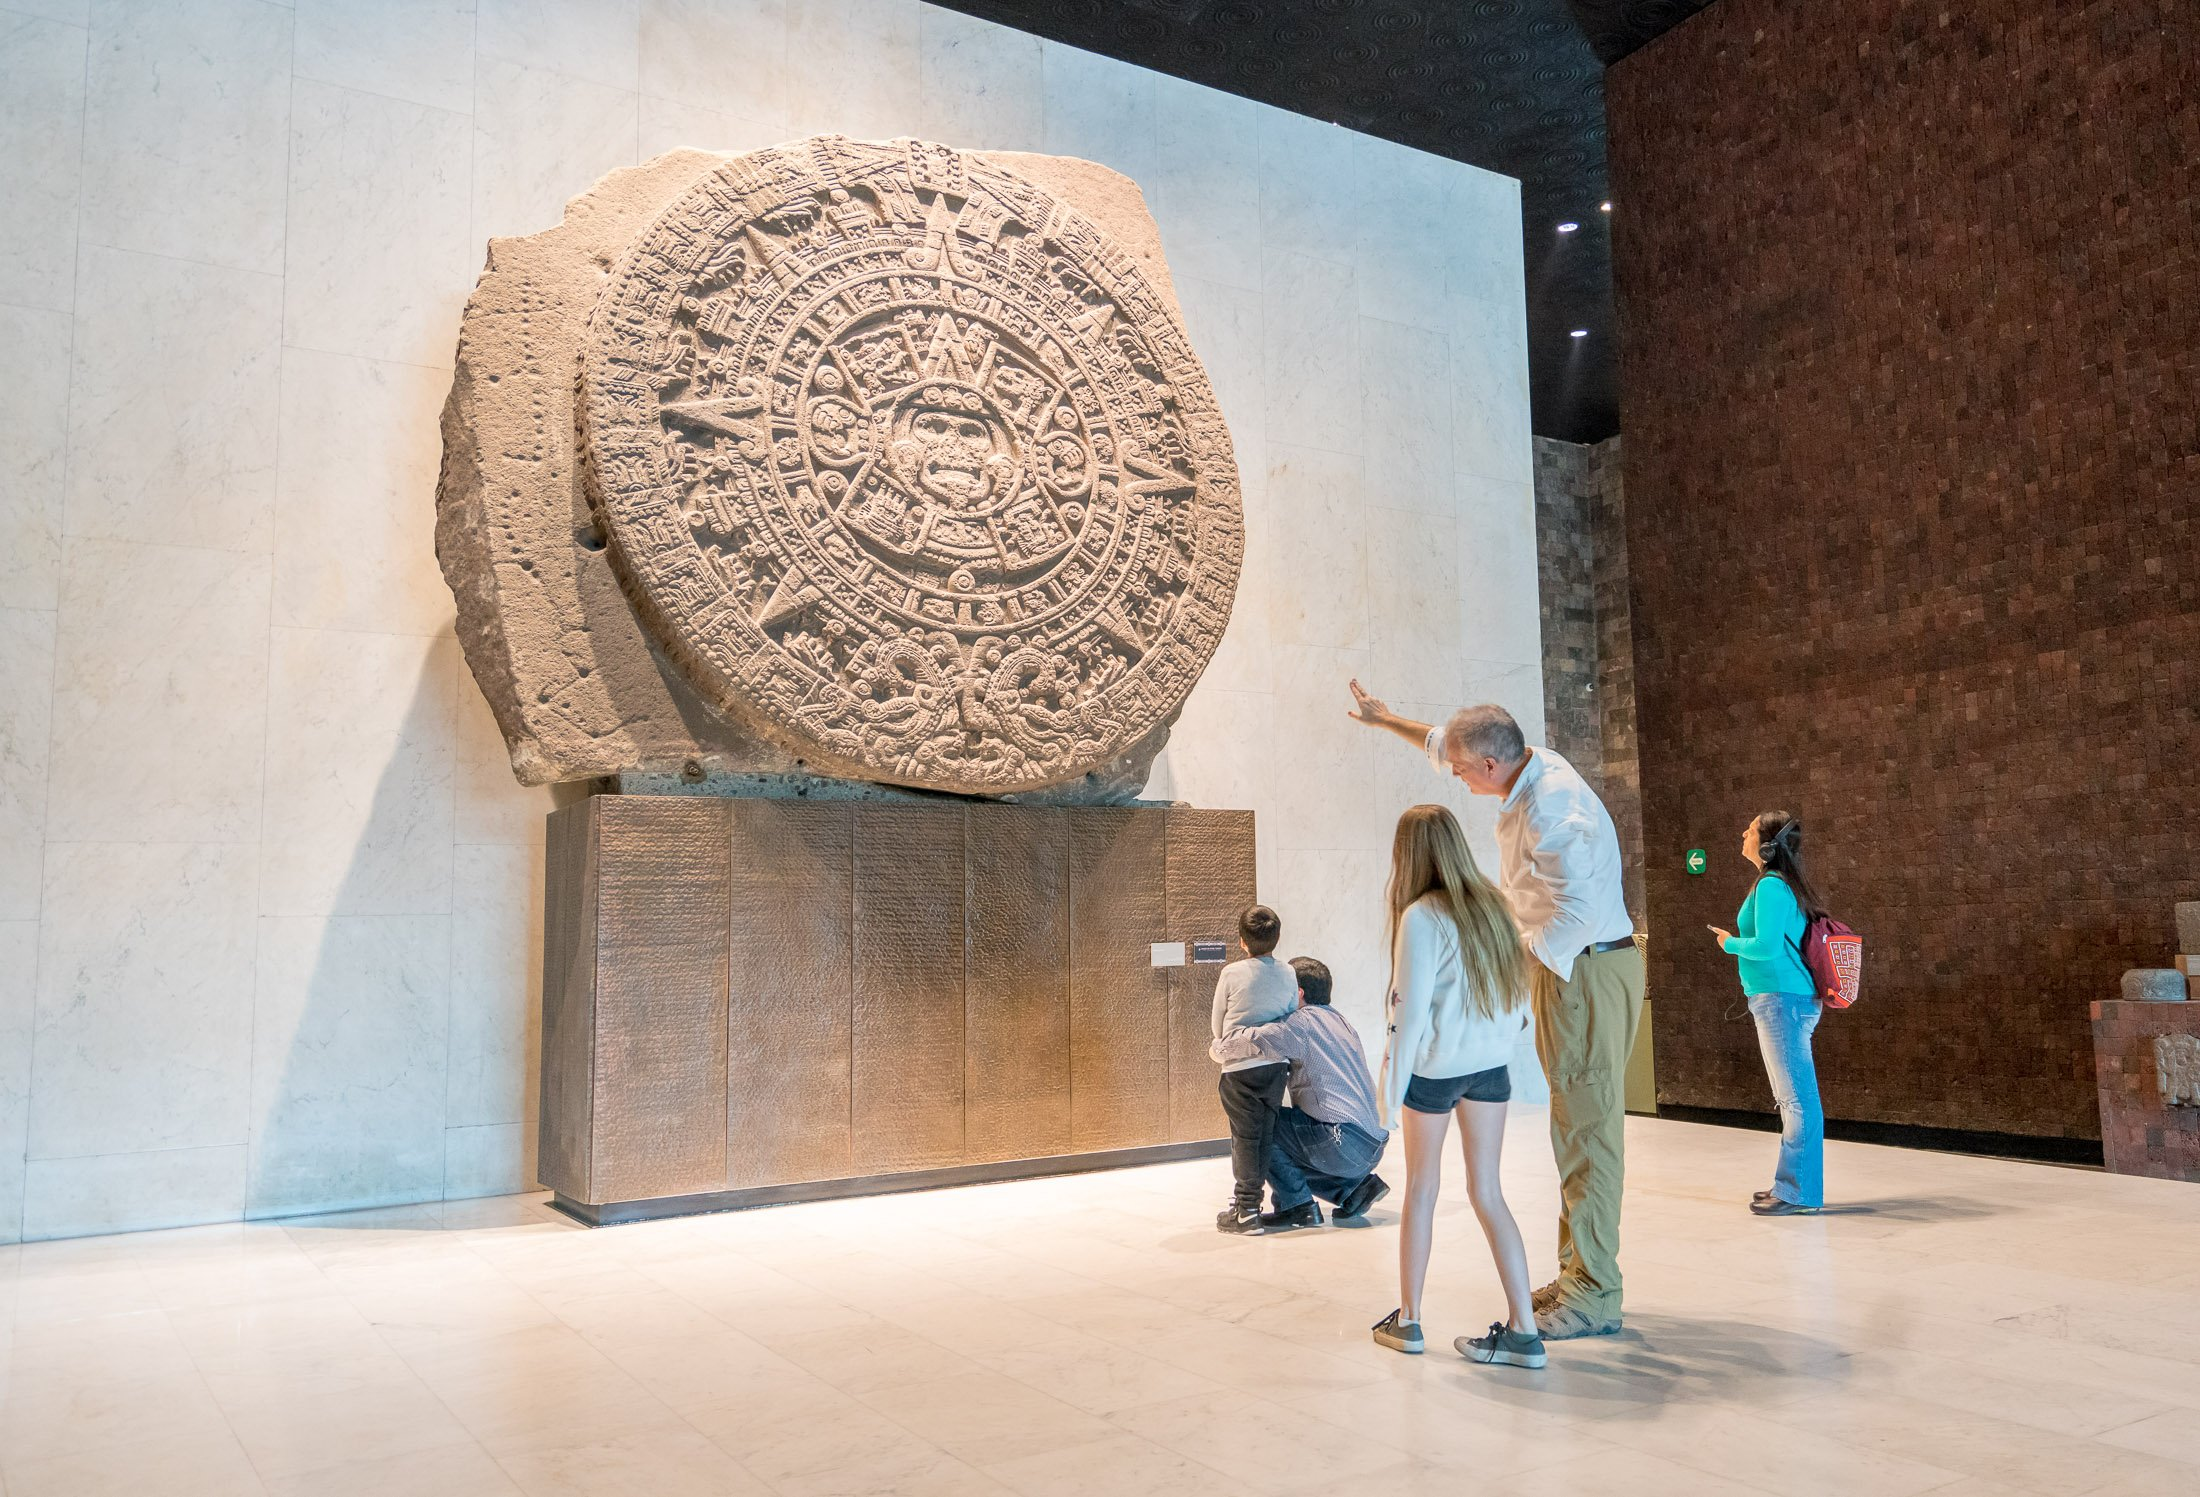 The best things to do in Mexico City with kids including museums, day trip to Teotihuacan, fun in Chapultepec Forest and more tips for your family vacation.